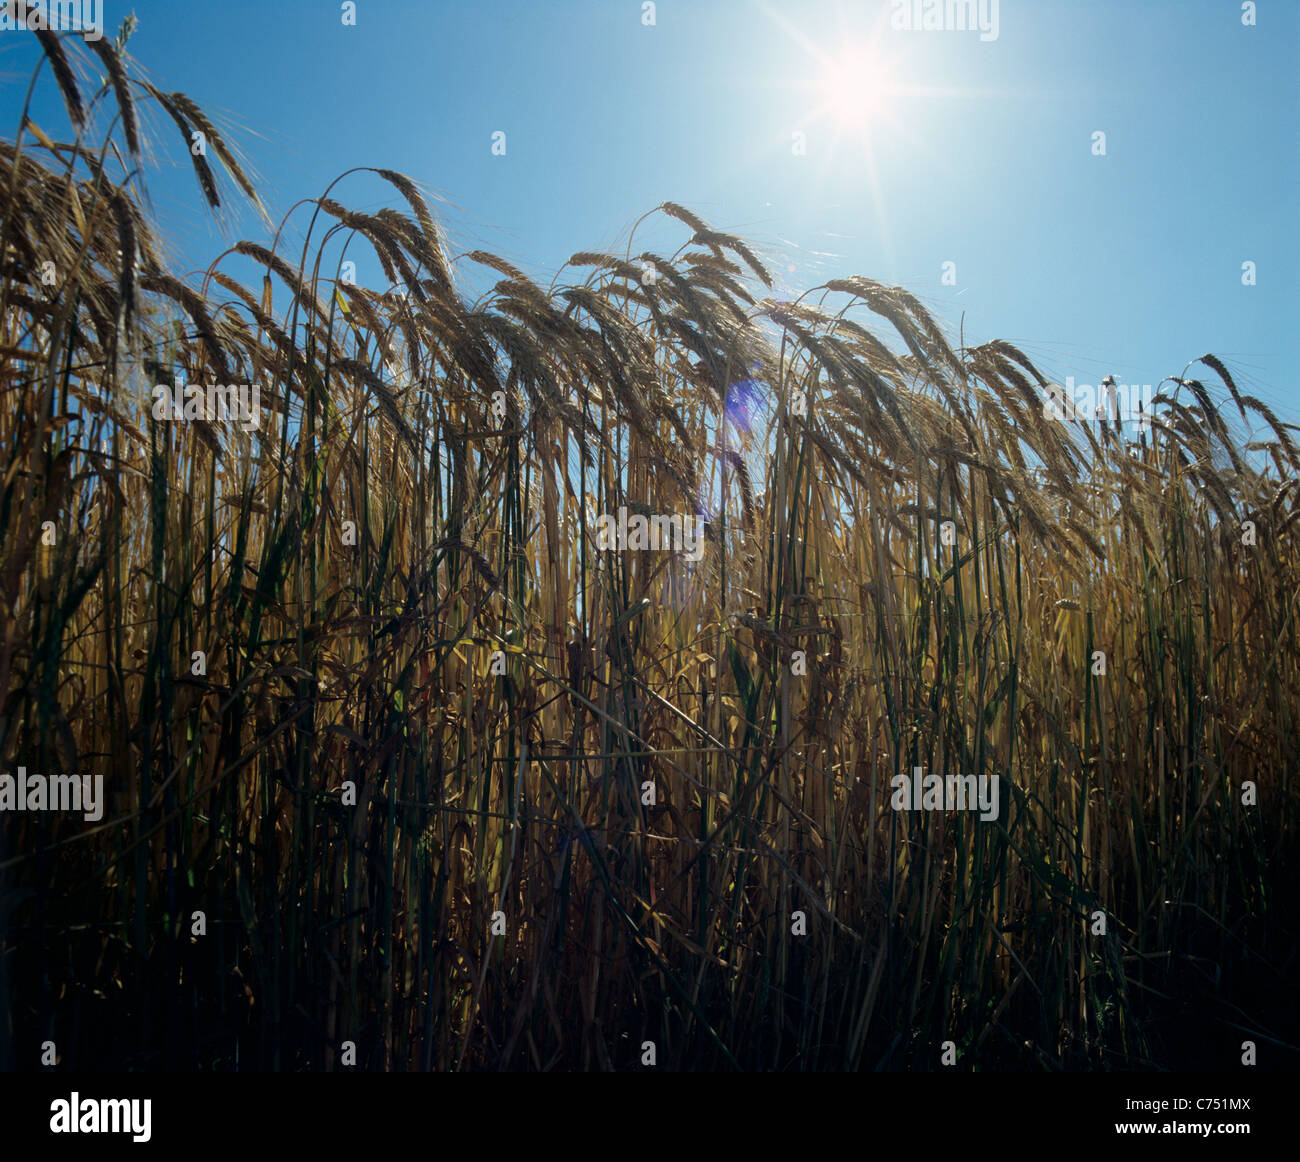 Ripe barley ears in silouette against late afternoon sunshine and blue sky - Stock Image